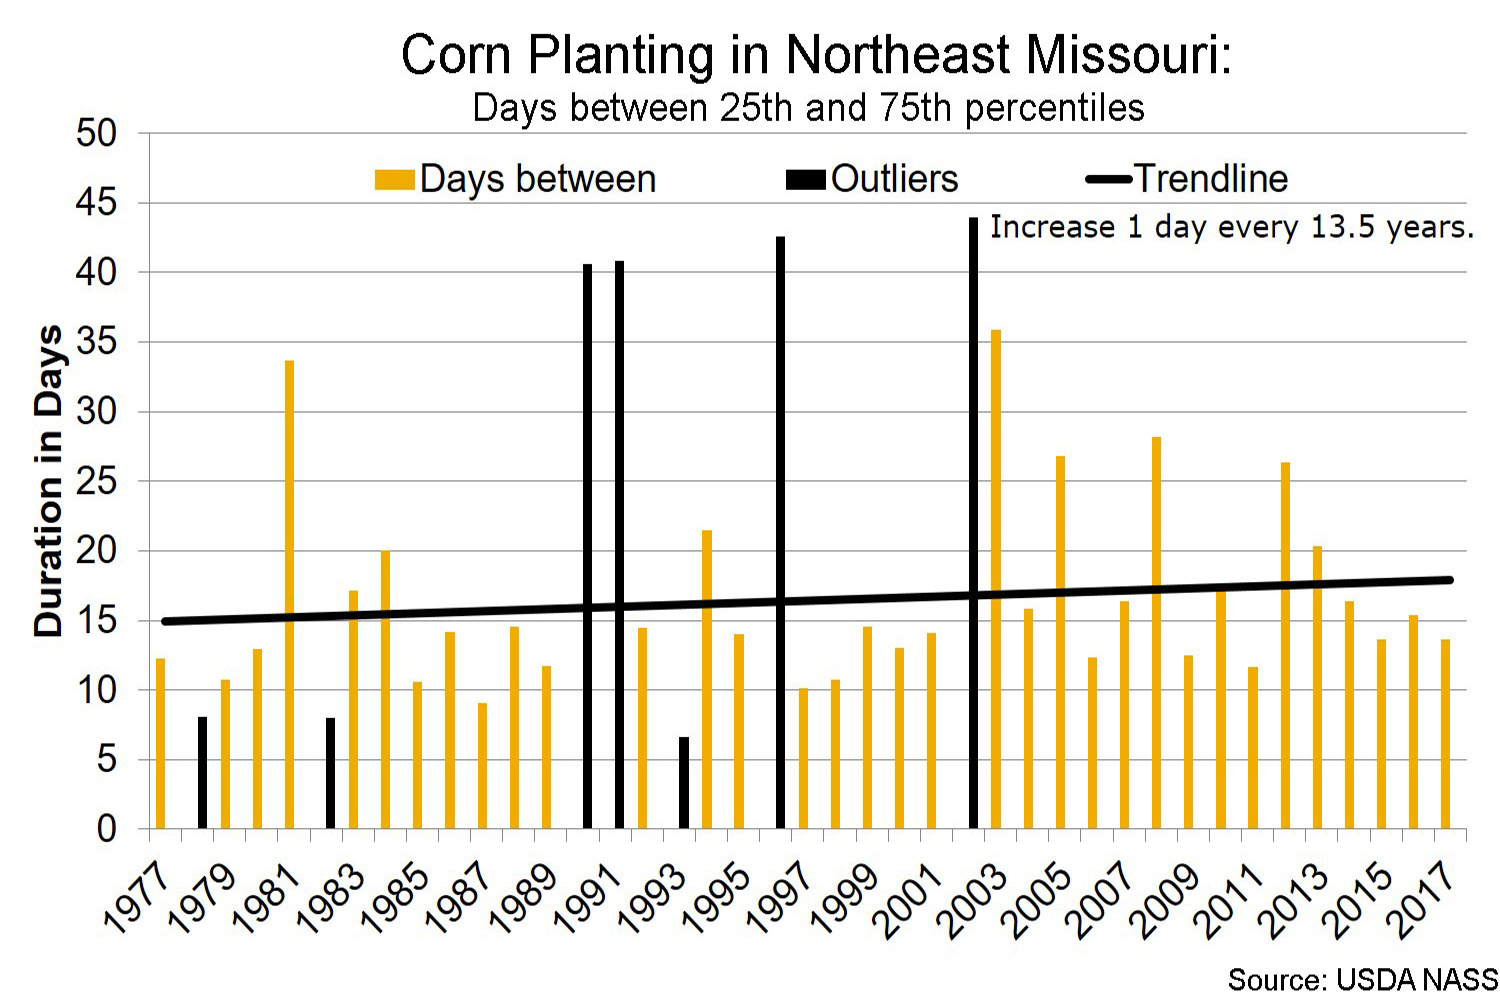 Corn planting in northeast Missouri days between 25th and 75th percentiles chart